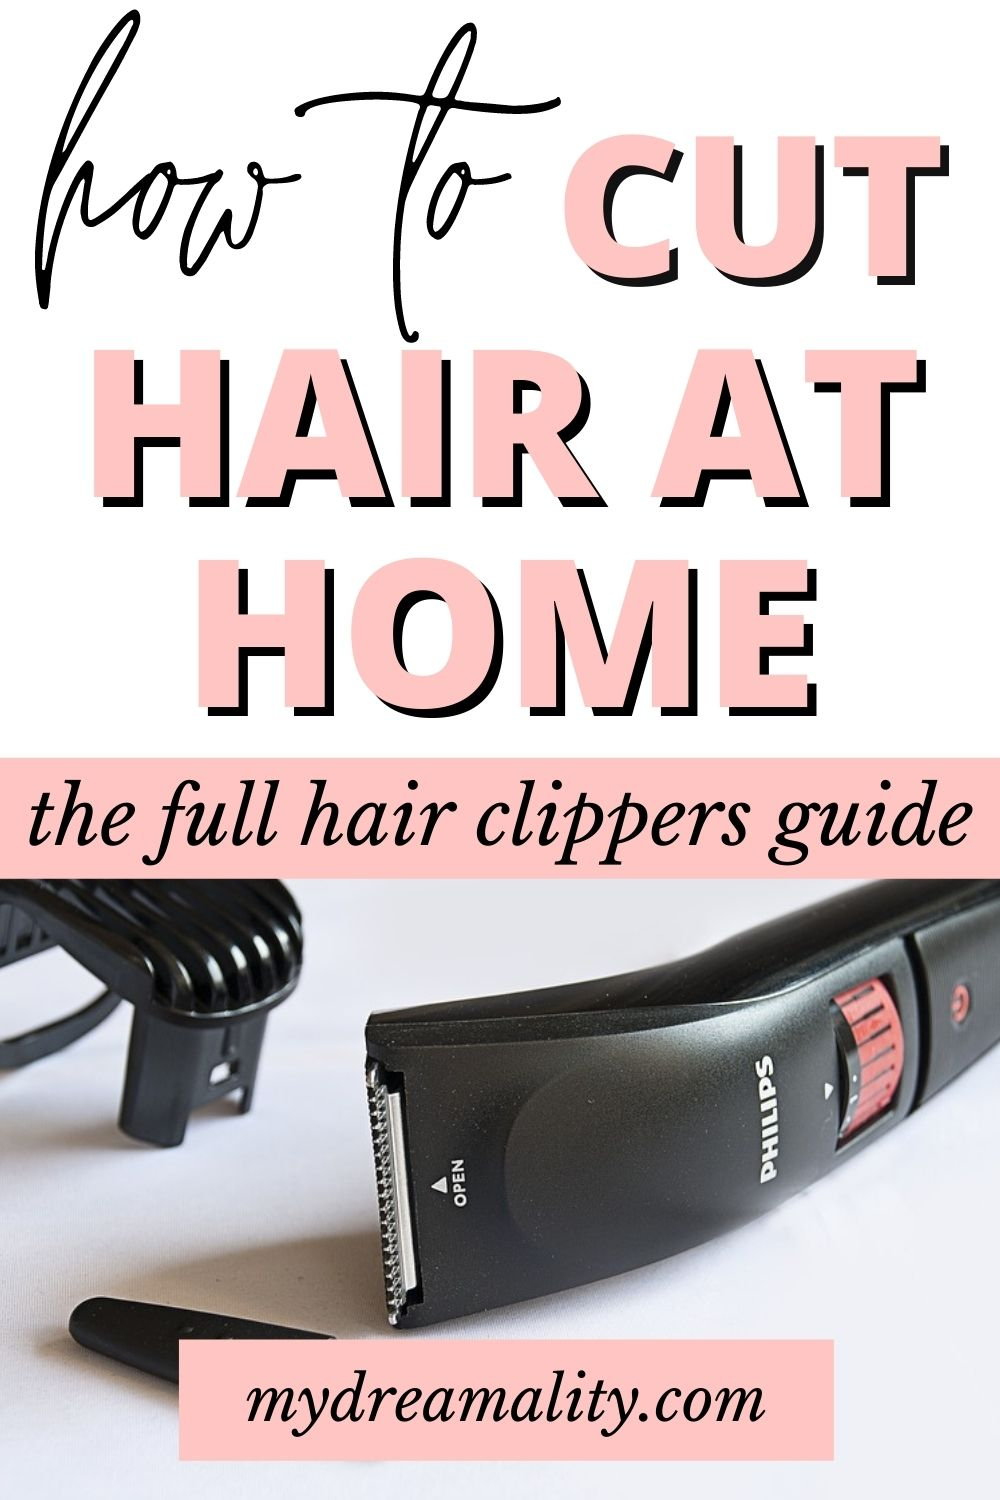 Hair Clippers Guide - How to Cut Hair At Home During Covid